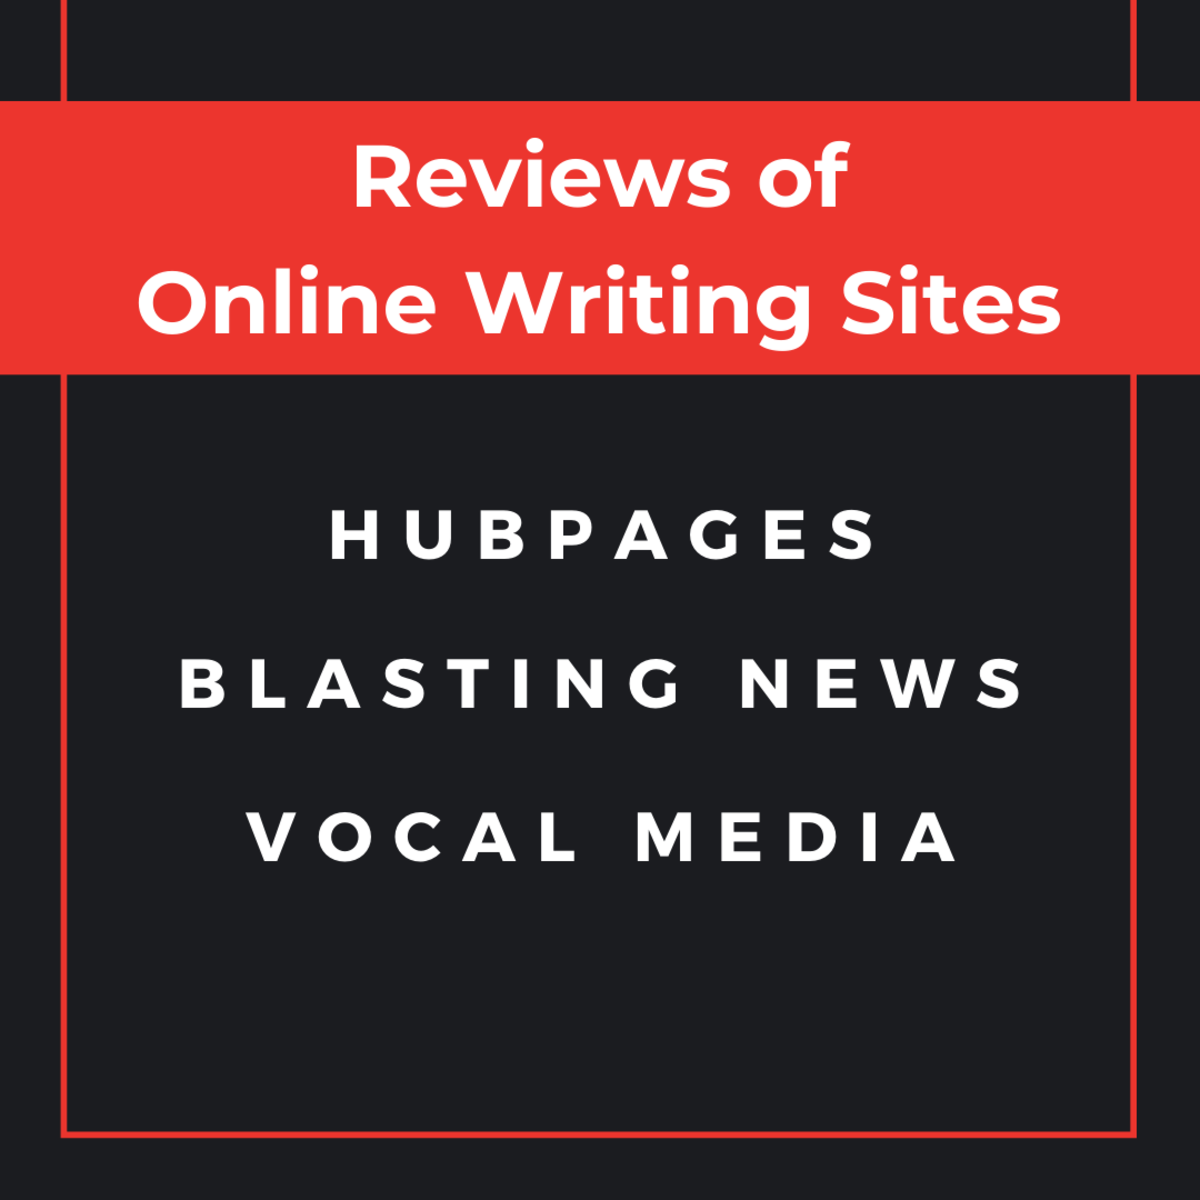 Read detailed reviews of three online writing sites, based on the author's personal experience.